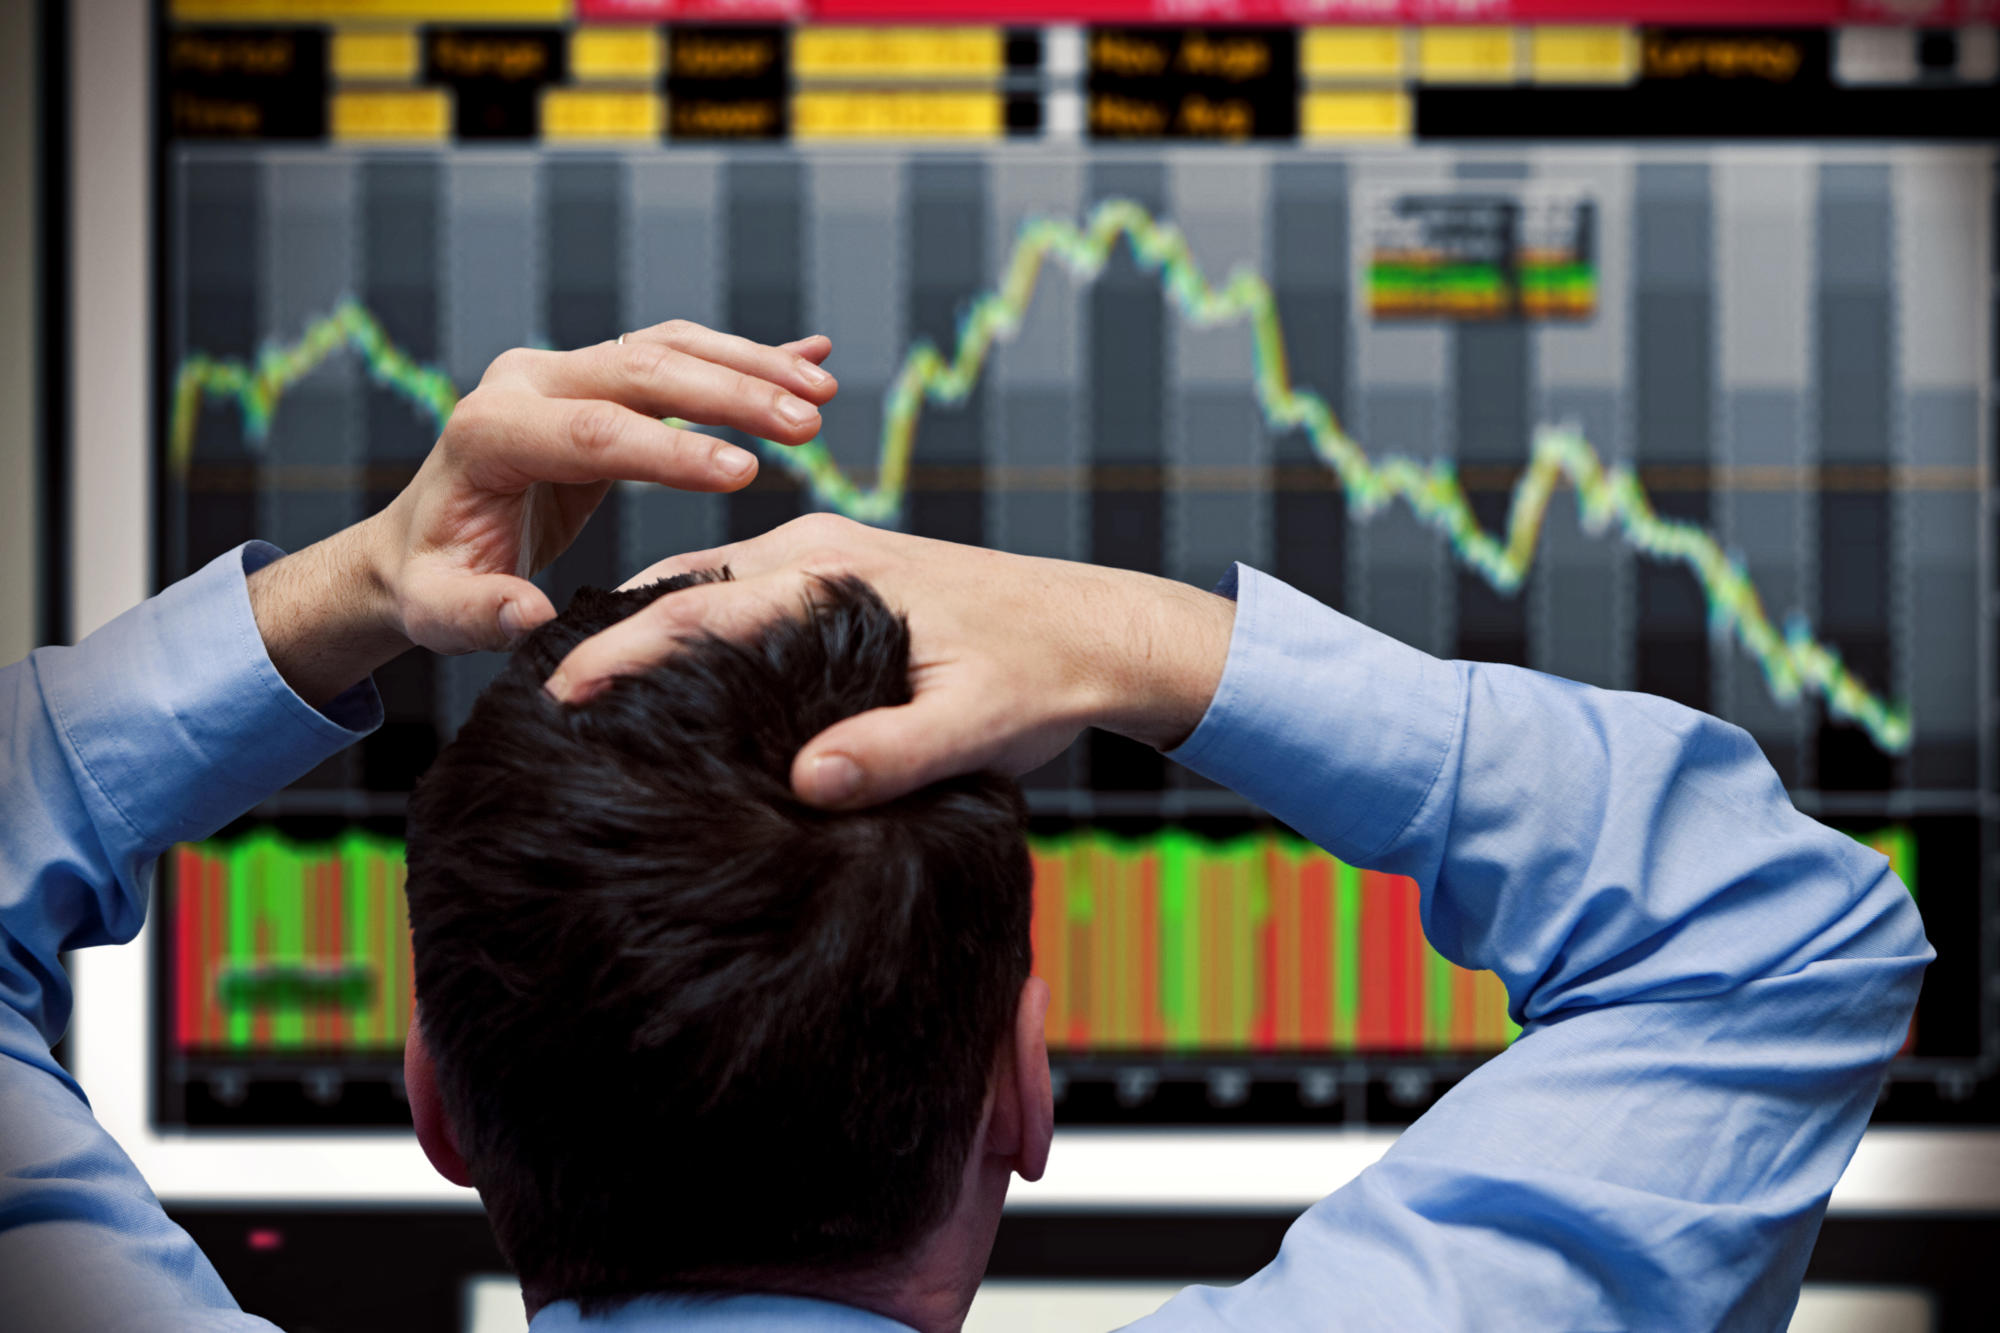 3 signs to watch to spot a stock market crash